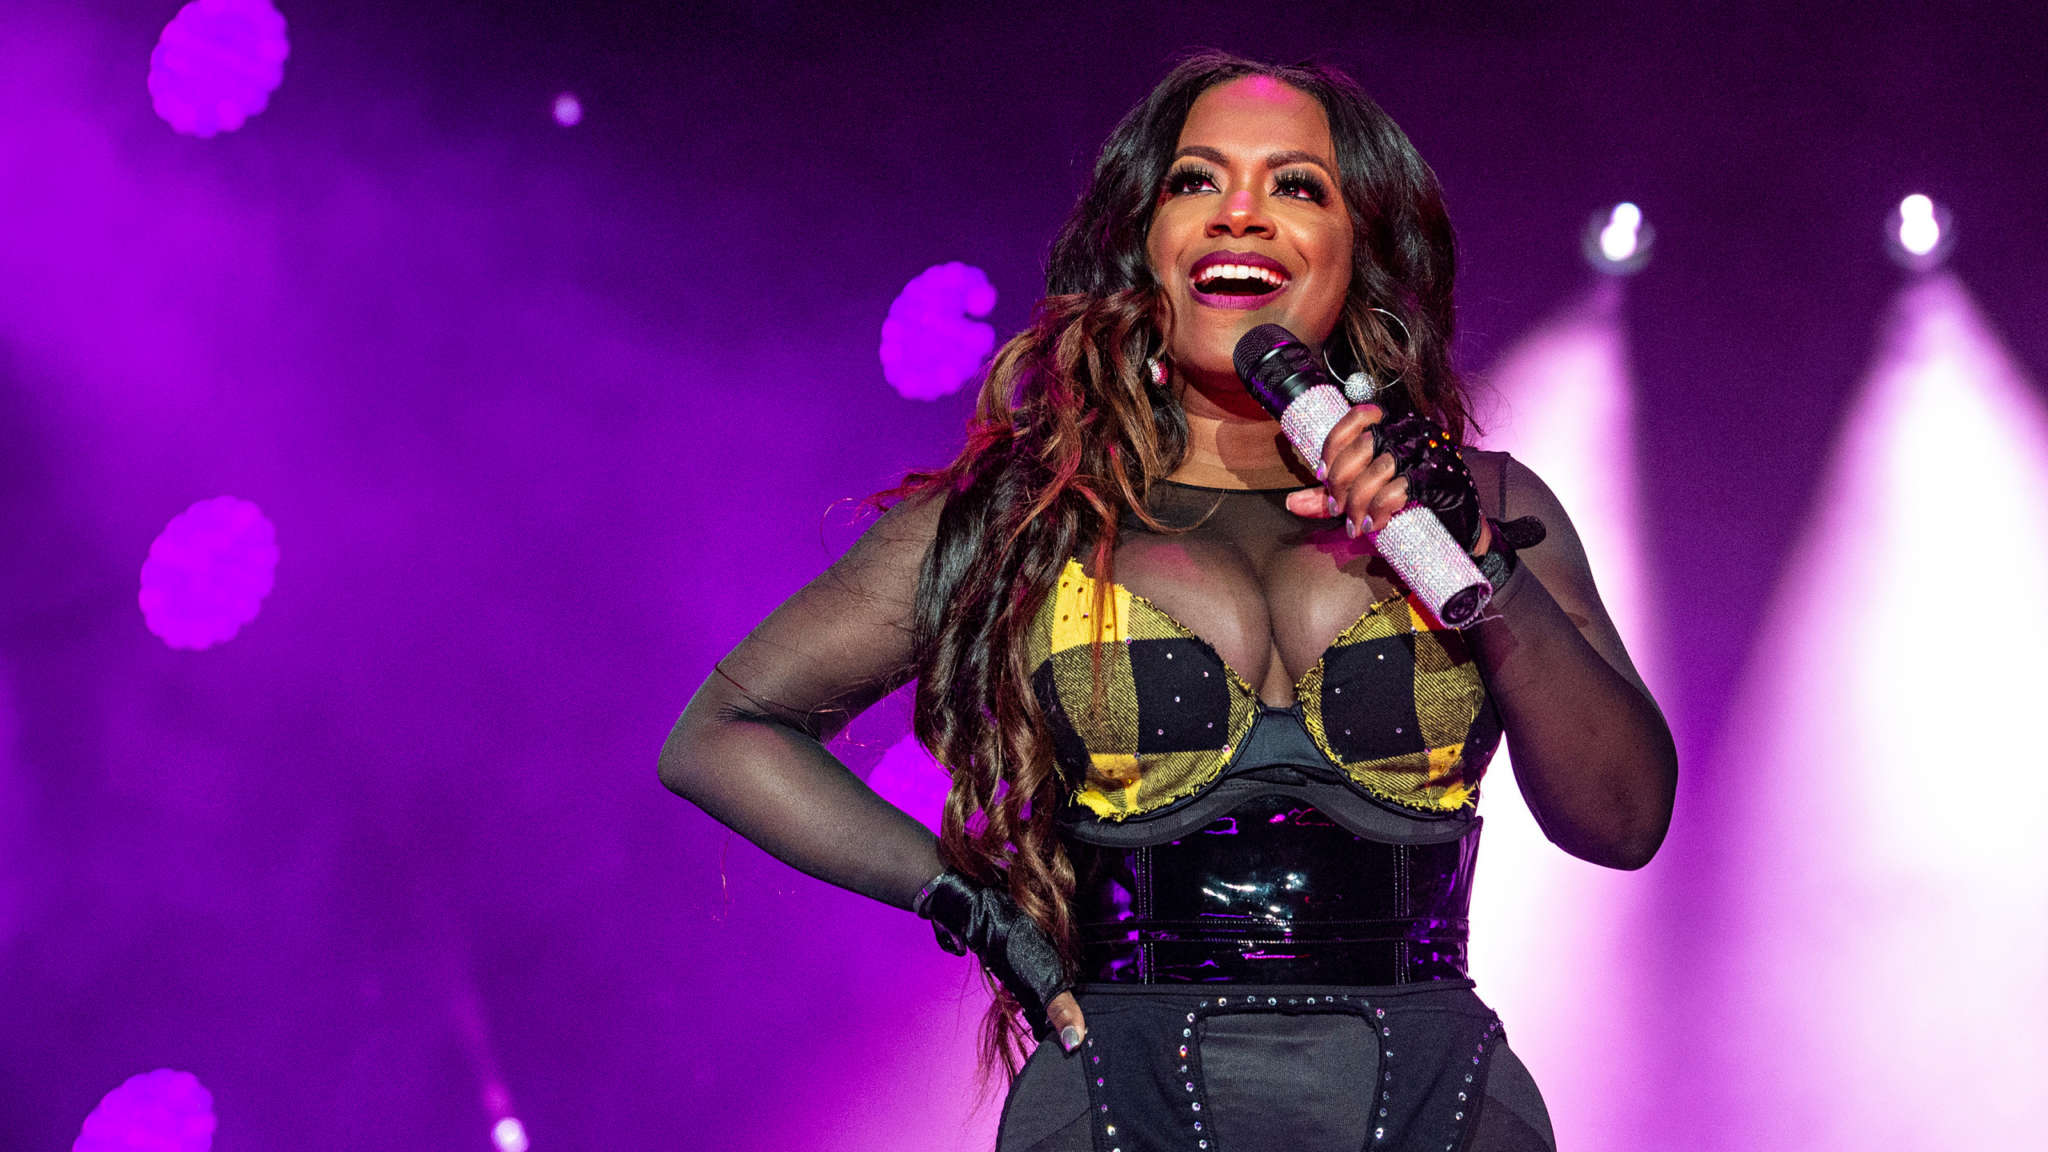 Kandi Burruss Drops New Music And Fans Are In Awe – Check Out The Video